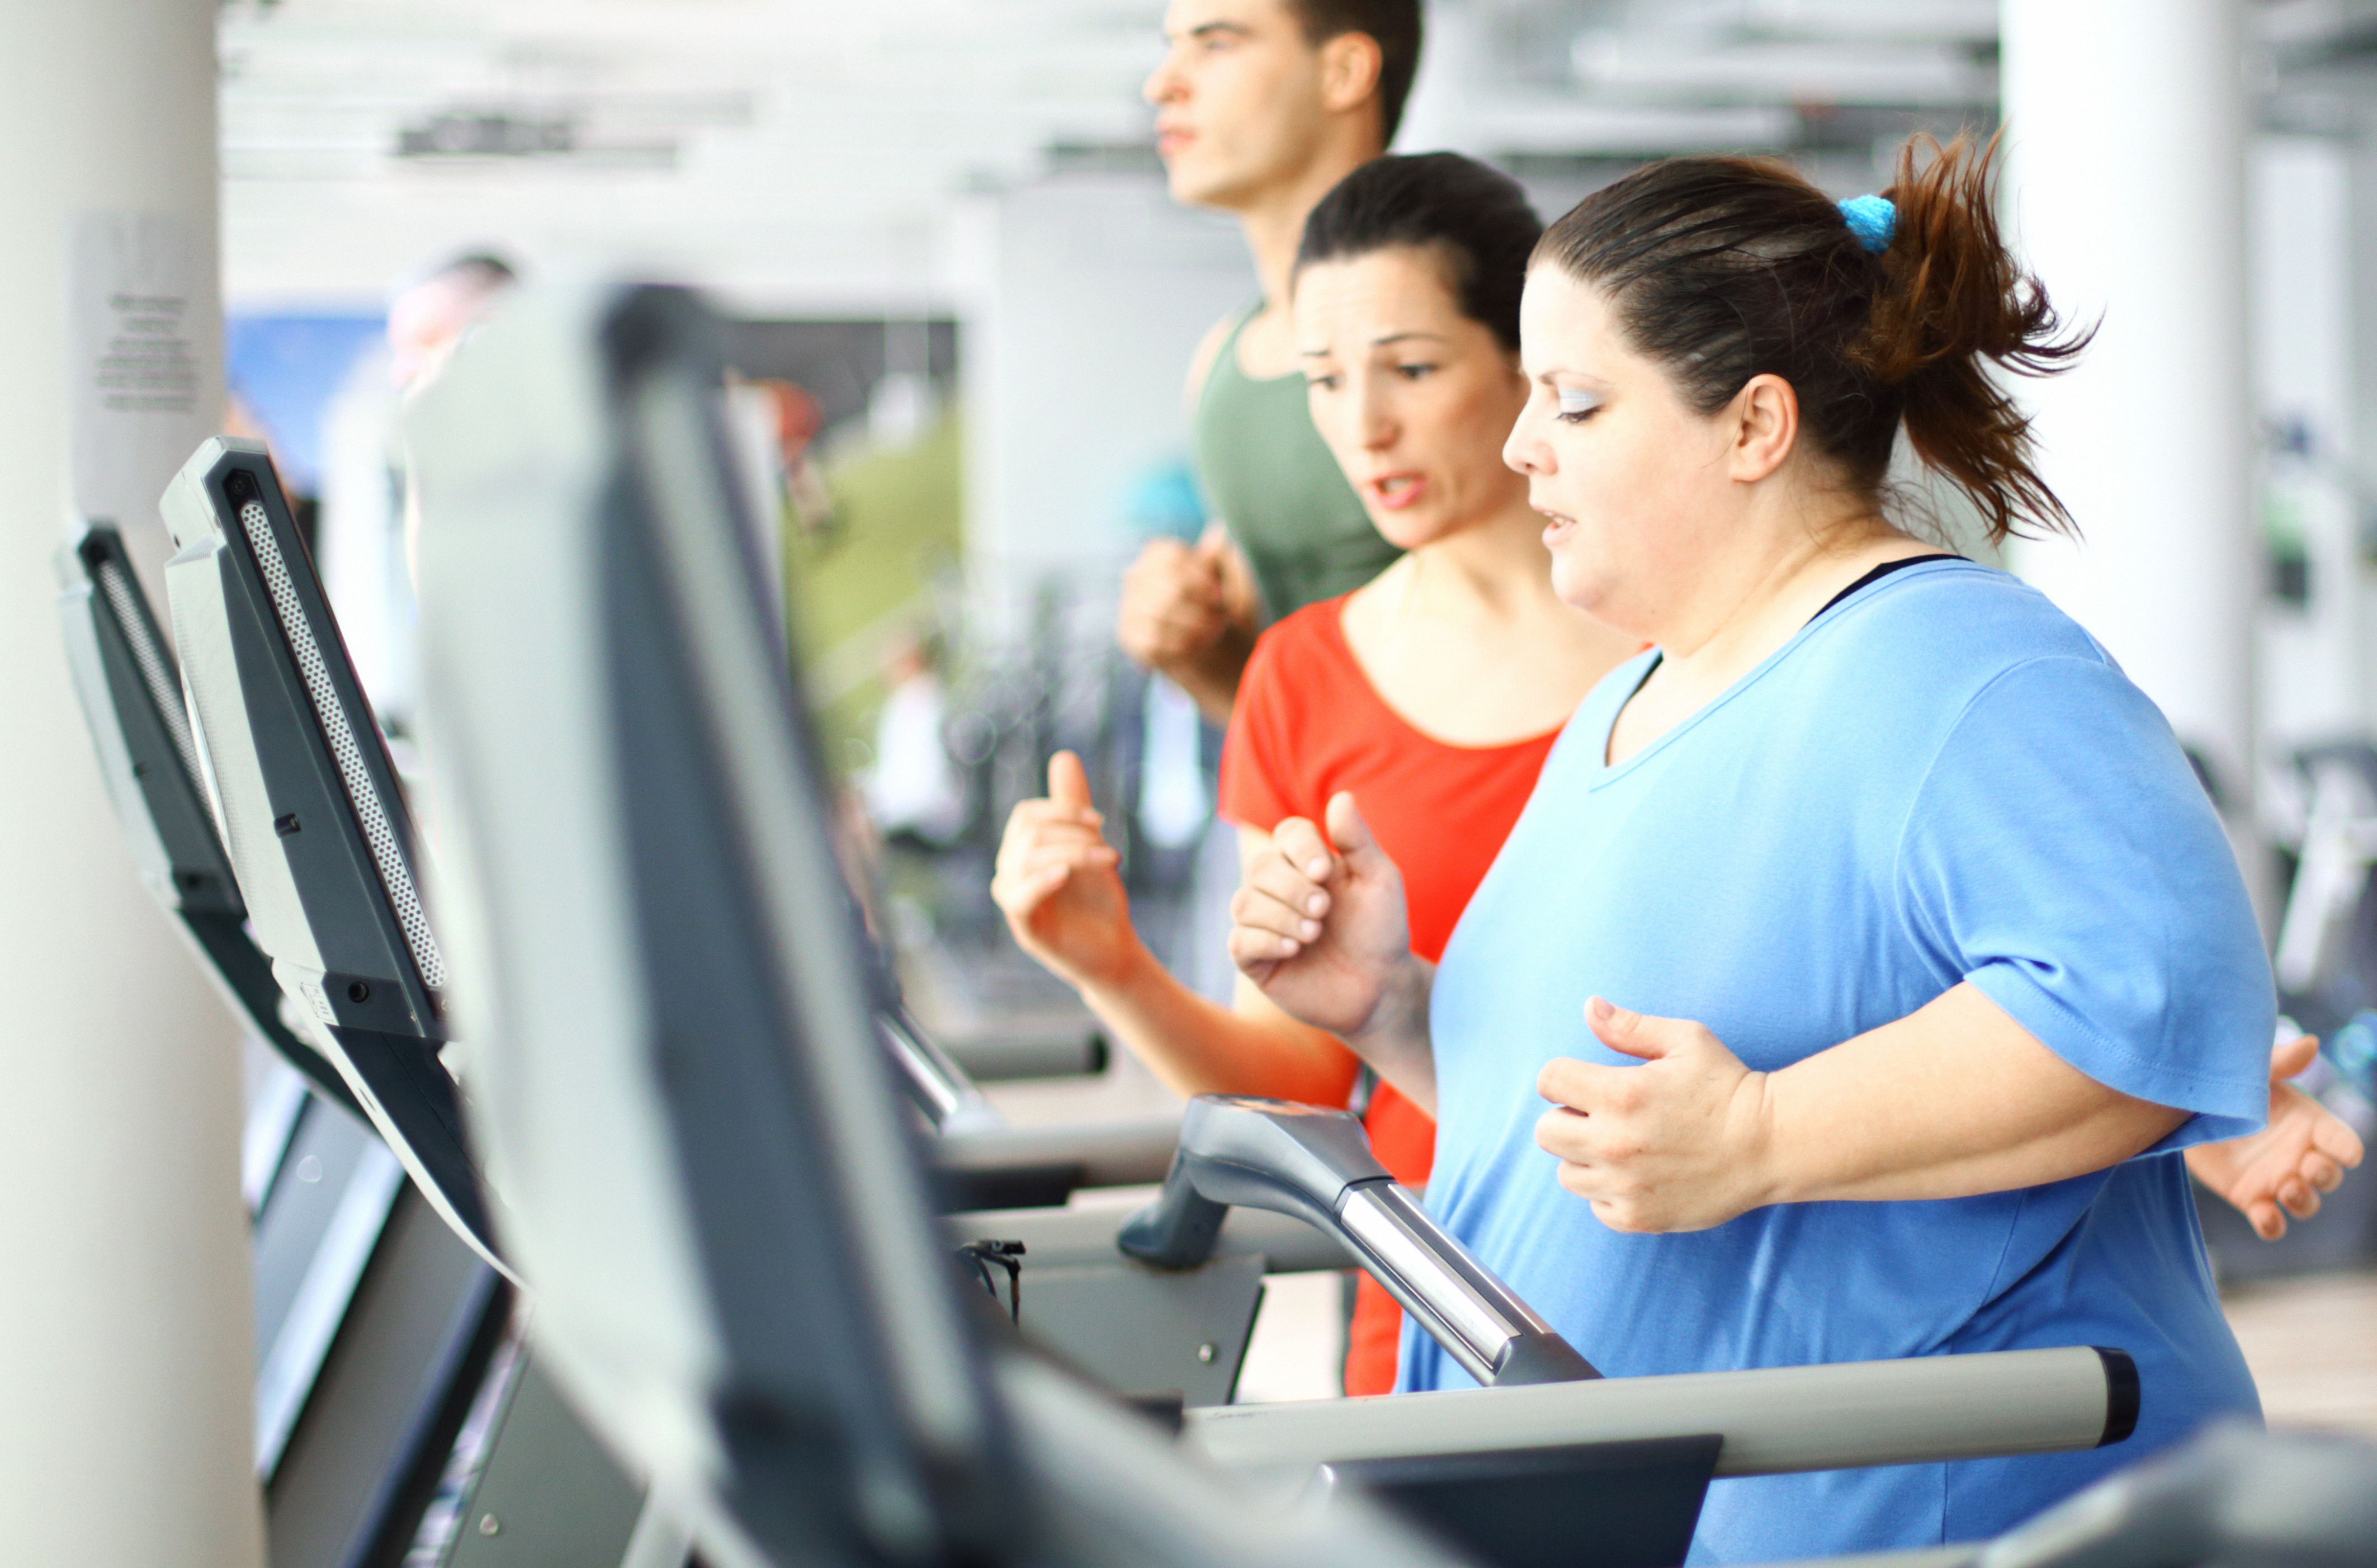 Brits have been encourages to lead a healthy life style under new government plans